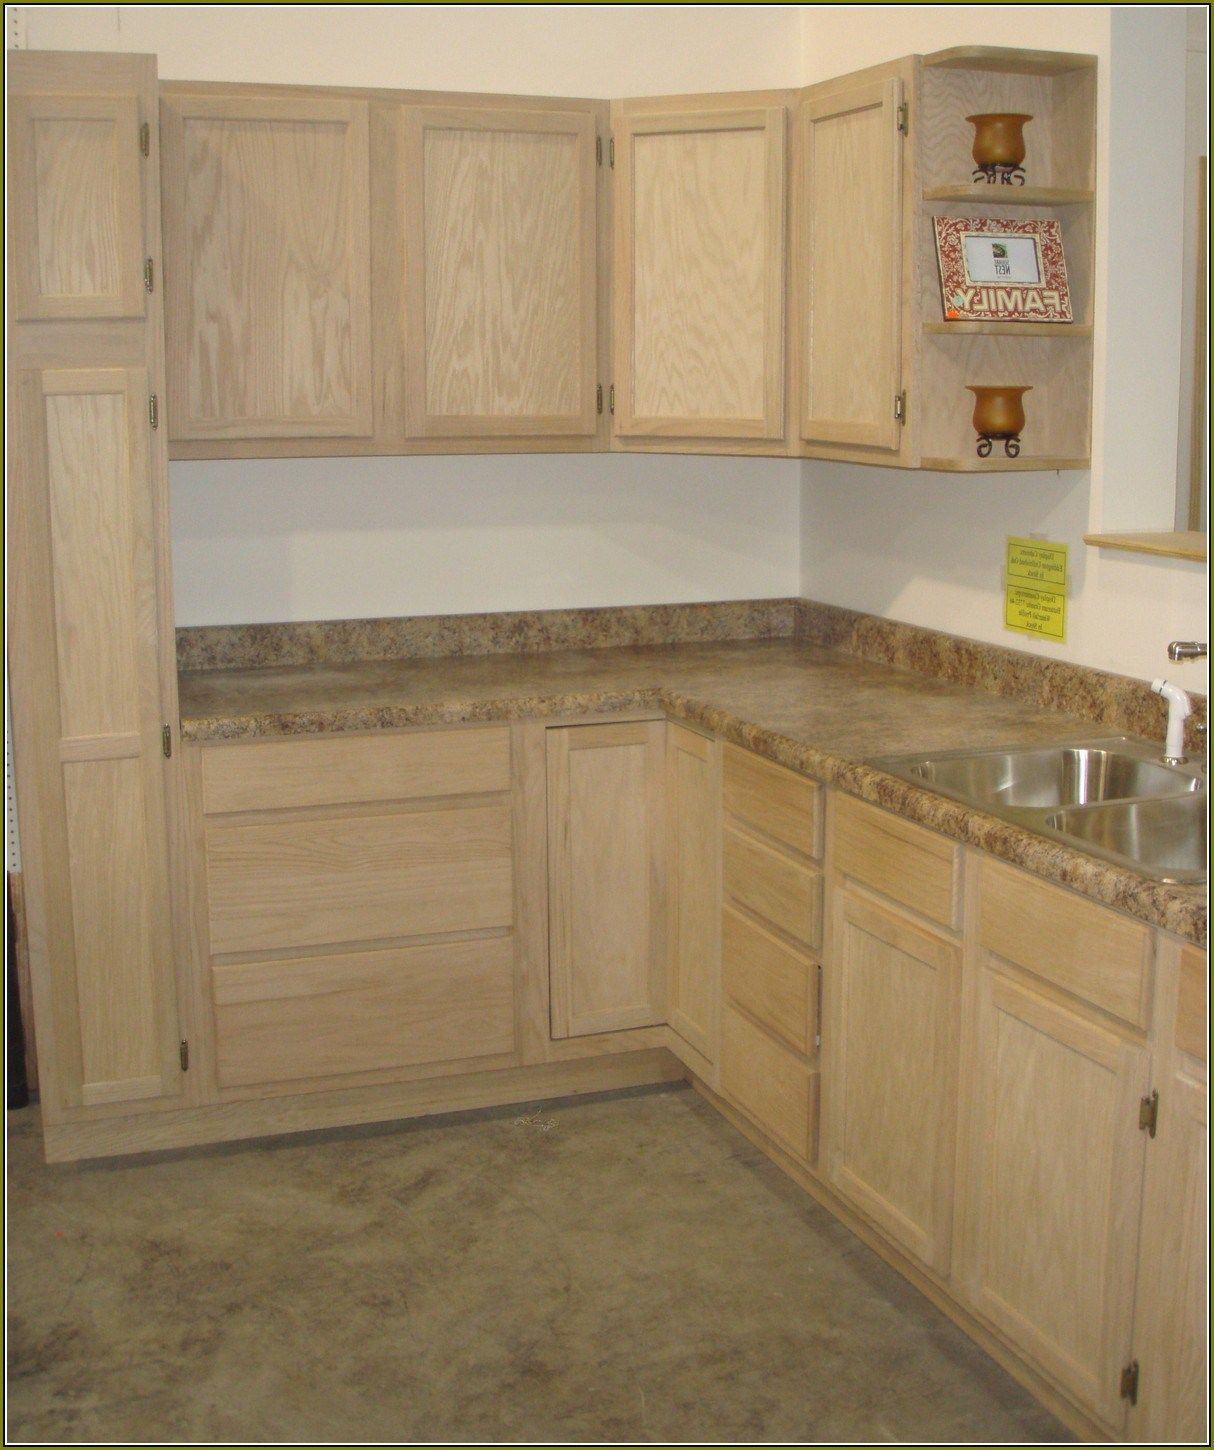 Unfinished brown oak double door kitchen wall cabinet at lowes com - Home Improvements Refference Unfinished Pine Cabinets Home Depot Kitchen Cabinets Assemble Home Depot Lowes Kitchen Cabinets